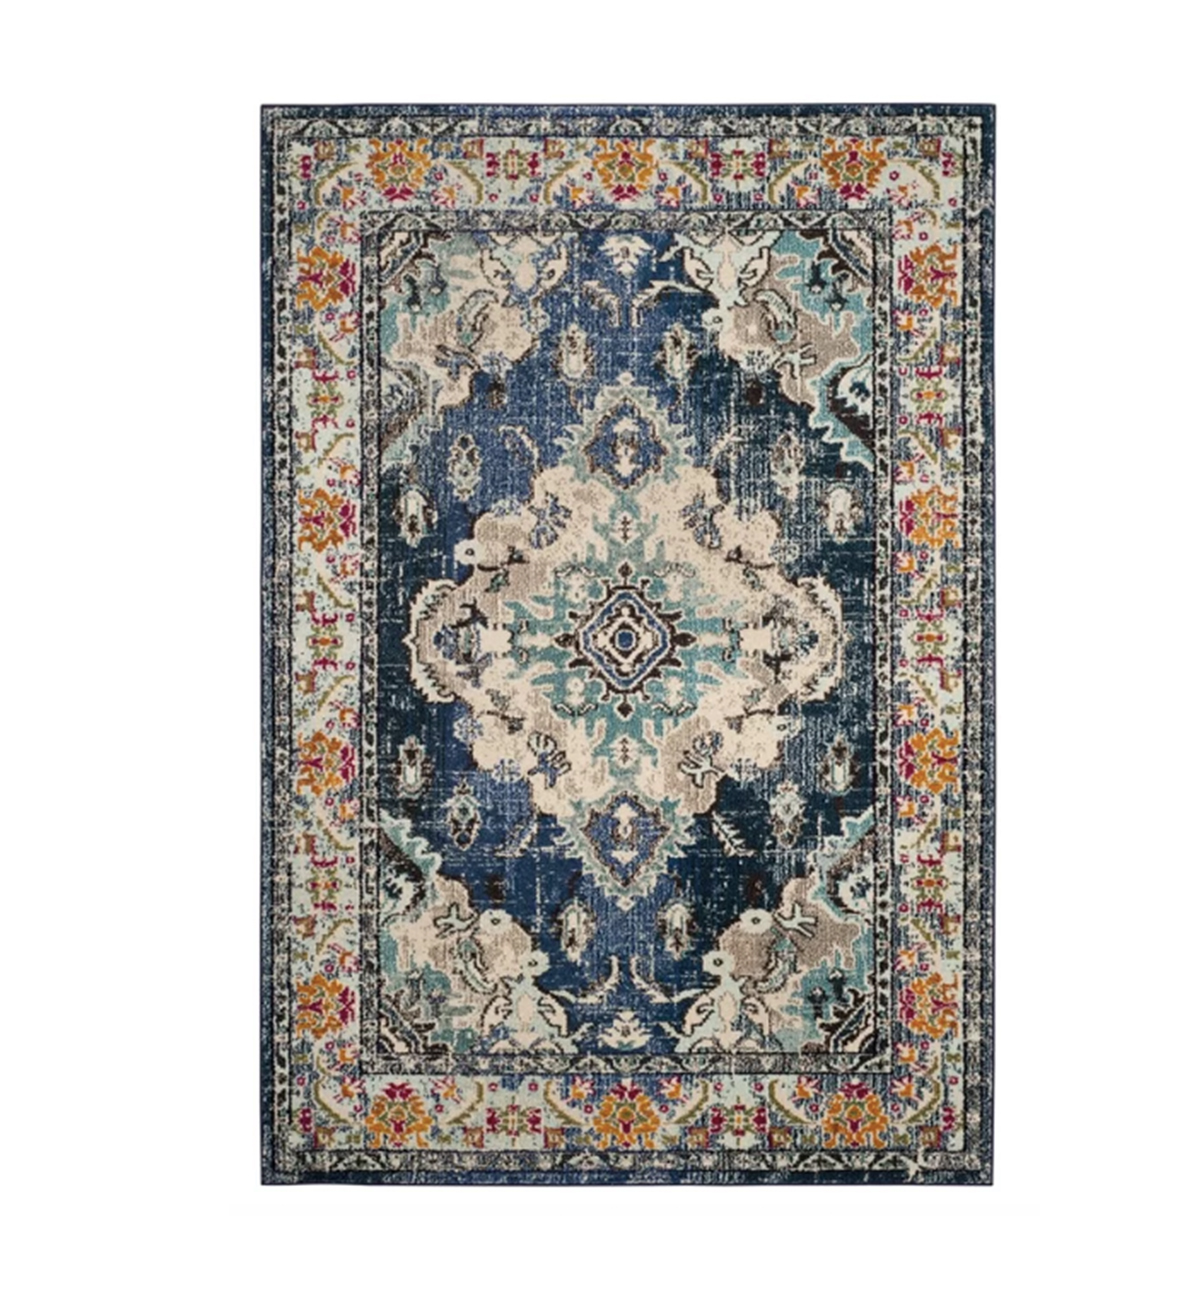 Luxurious Rugs Bedding And Towels From Wayfair S July